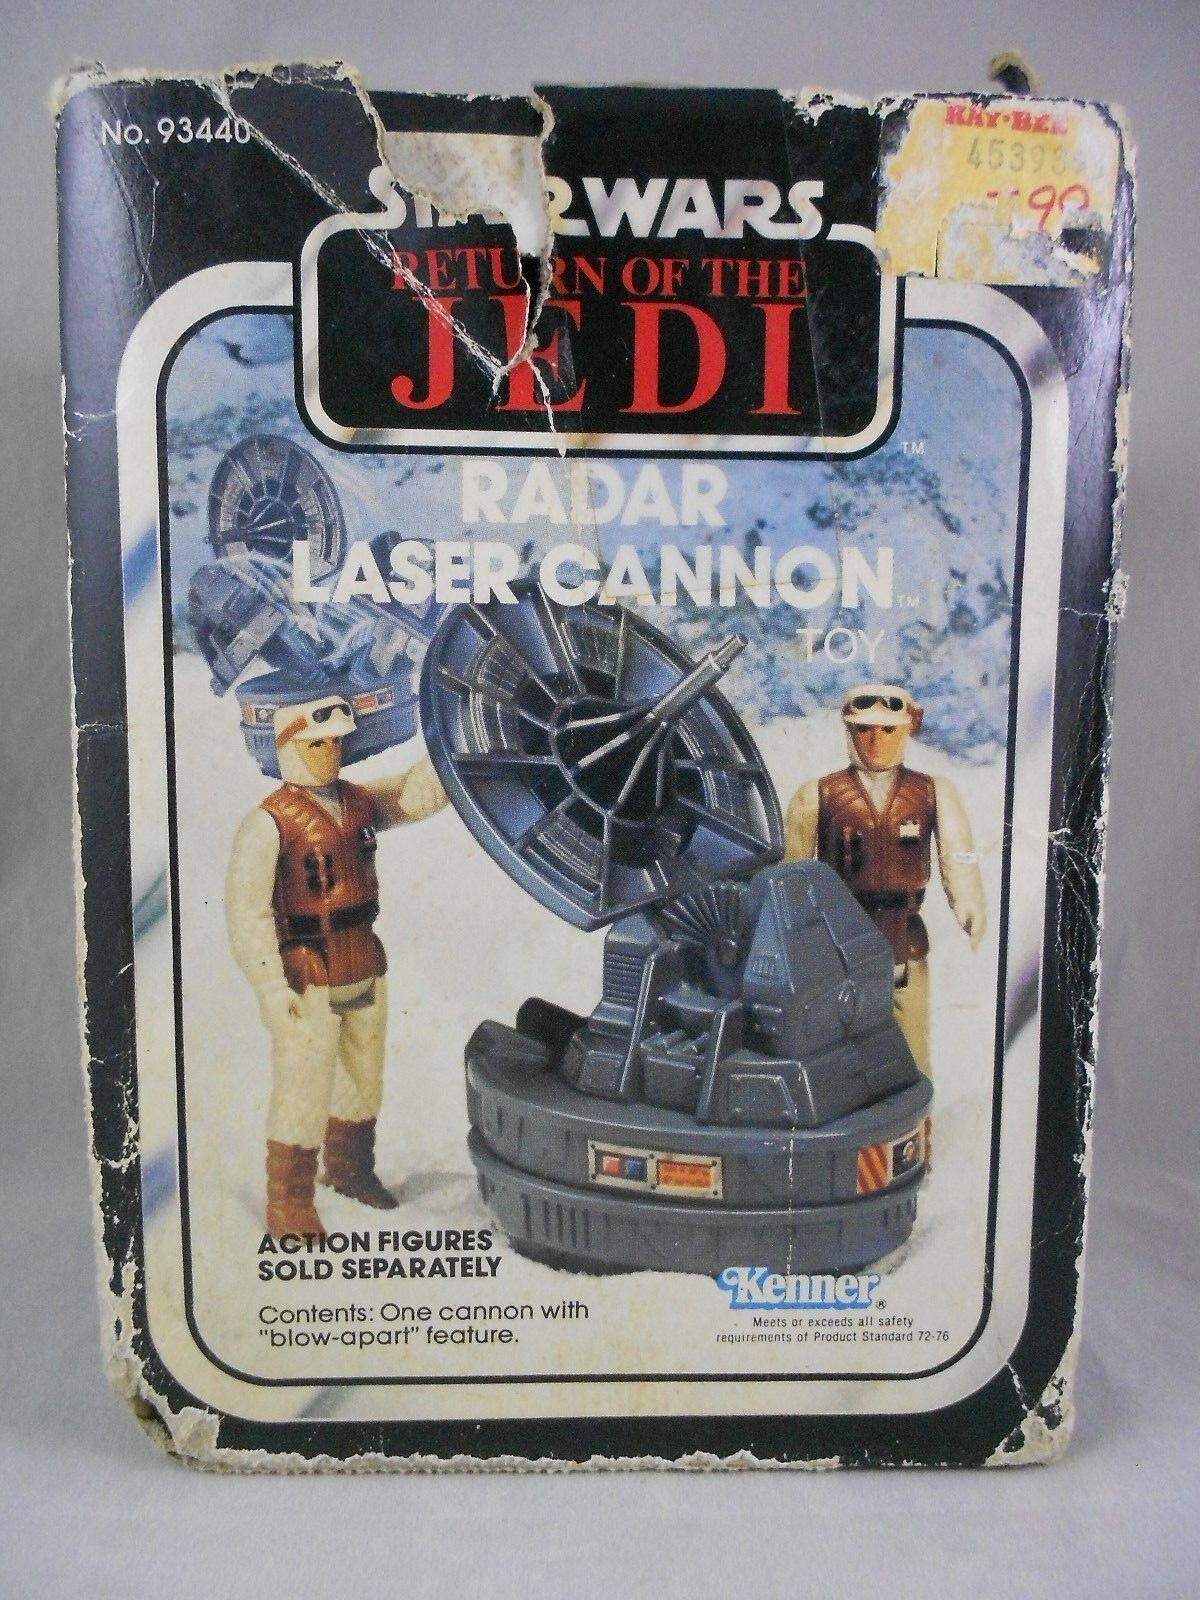 Vintage Star Wars ROTJ 1983 Radar Laser Cannon - Mint in Sealed Fair Cond. Box